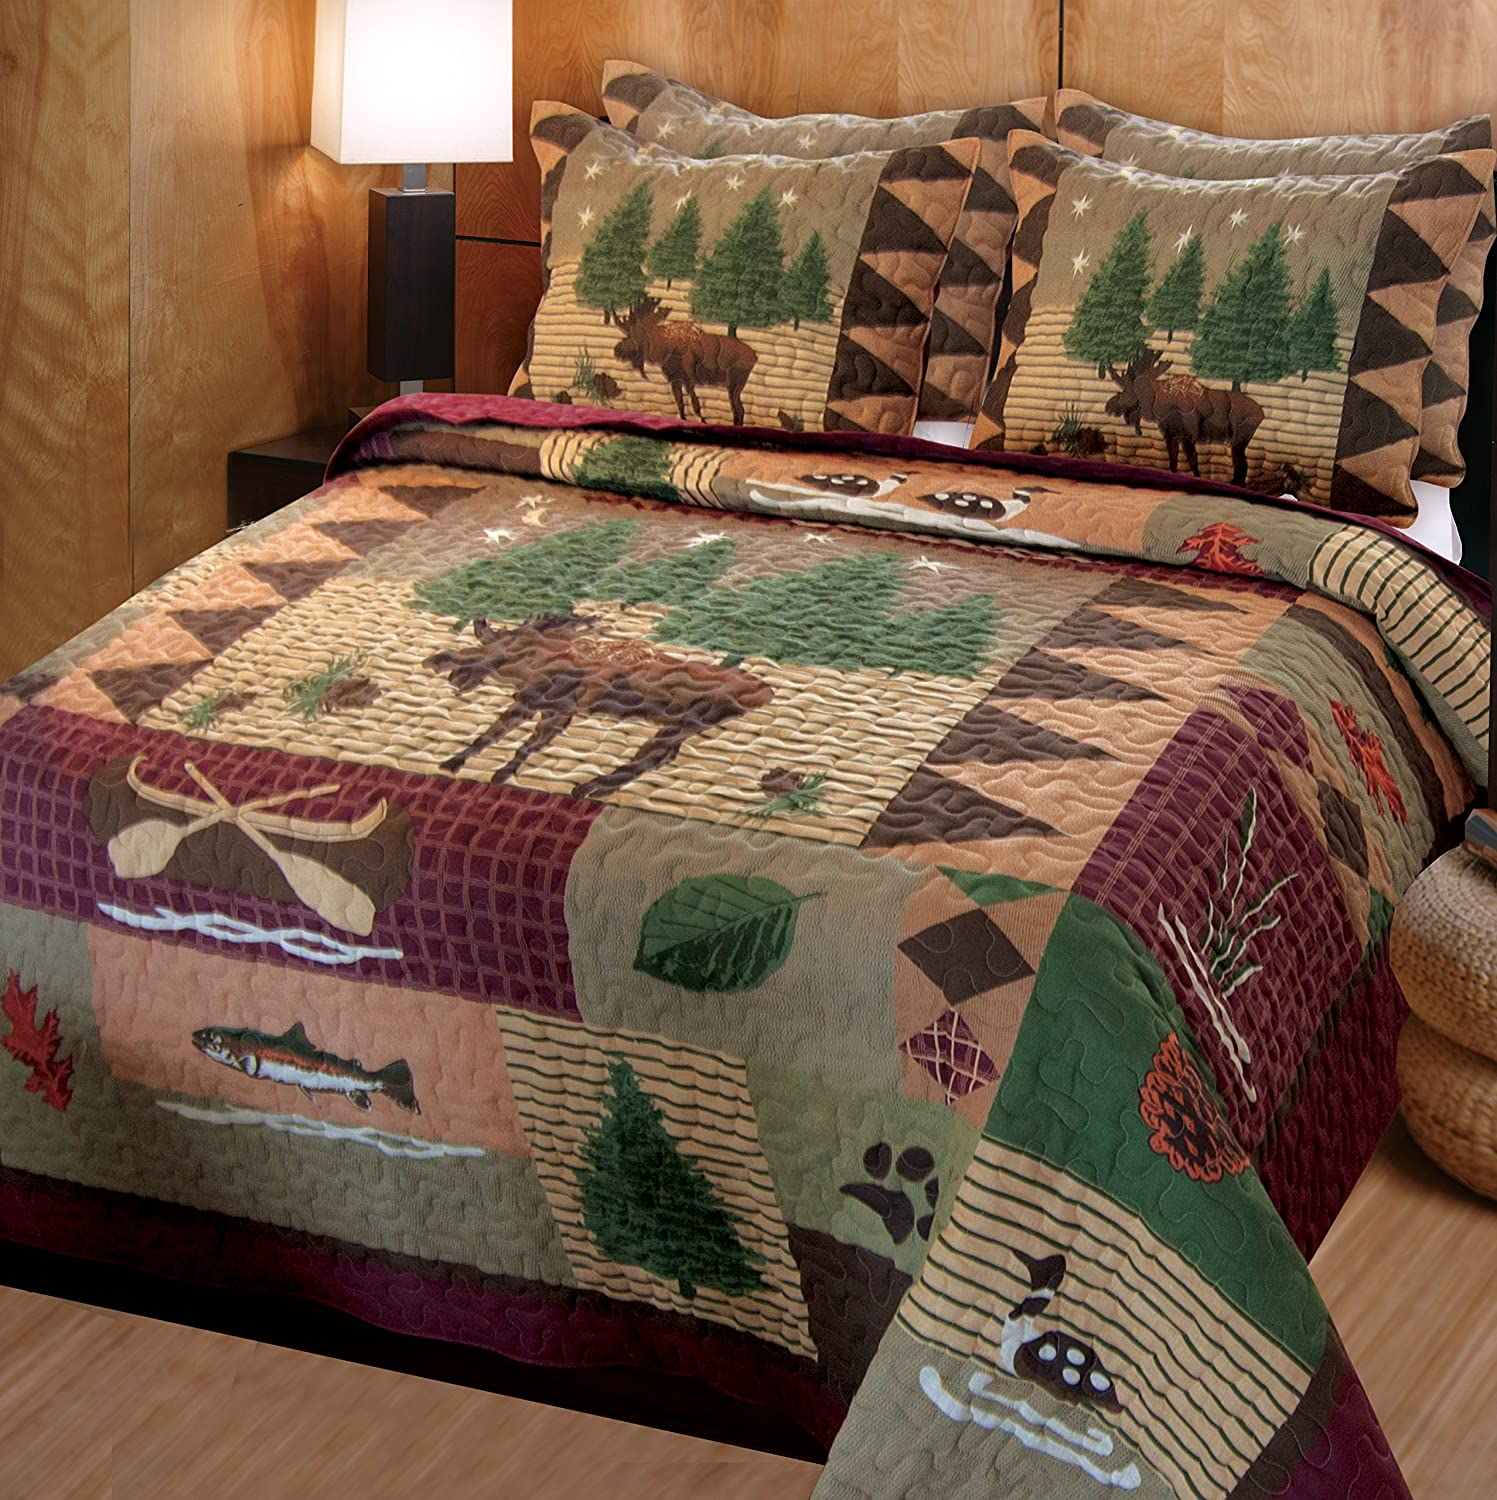 Amazon.com: Greenland Home Moose Lodge Quilt Set, Full/Queen: Home ... : bear quilts for sale - Adamdwight.com